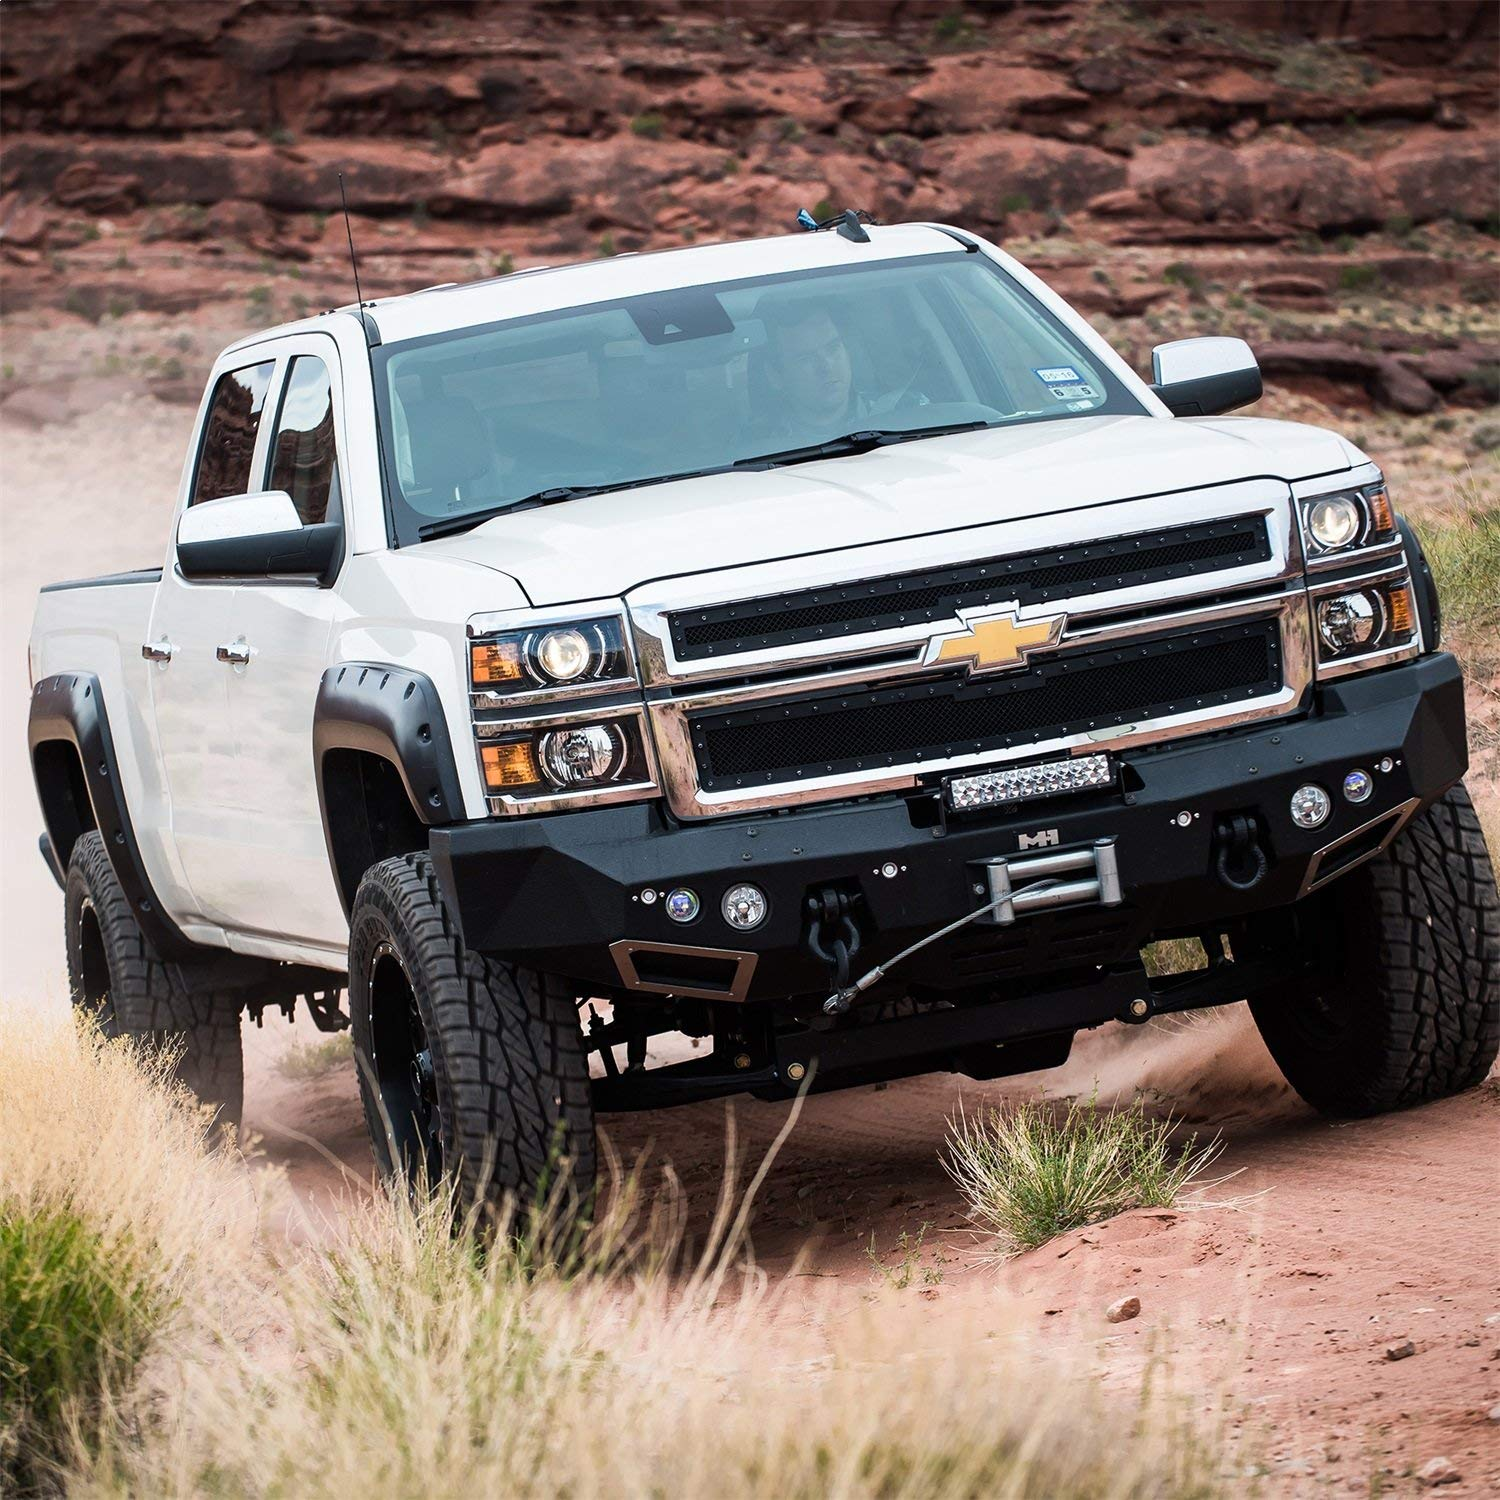 6 Inch Lift Kit For Chevy Silverado 1500 >> Pro Comp 6 Suspension Lift Kit For 2014 2016 Chevrolet Silverado 1500 Gmc Sierra 1500